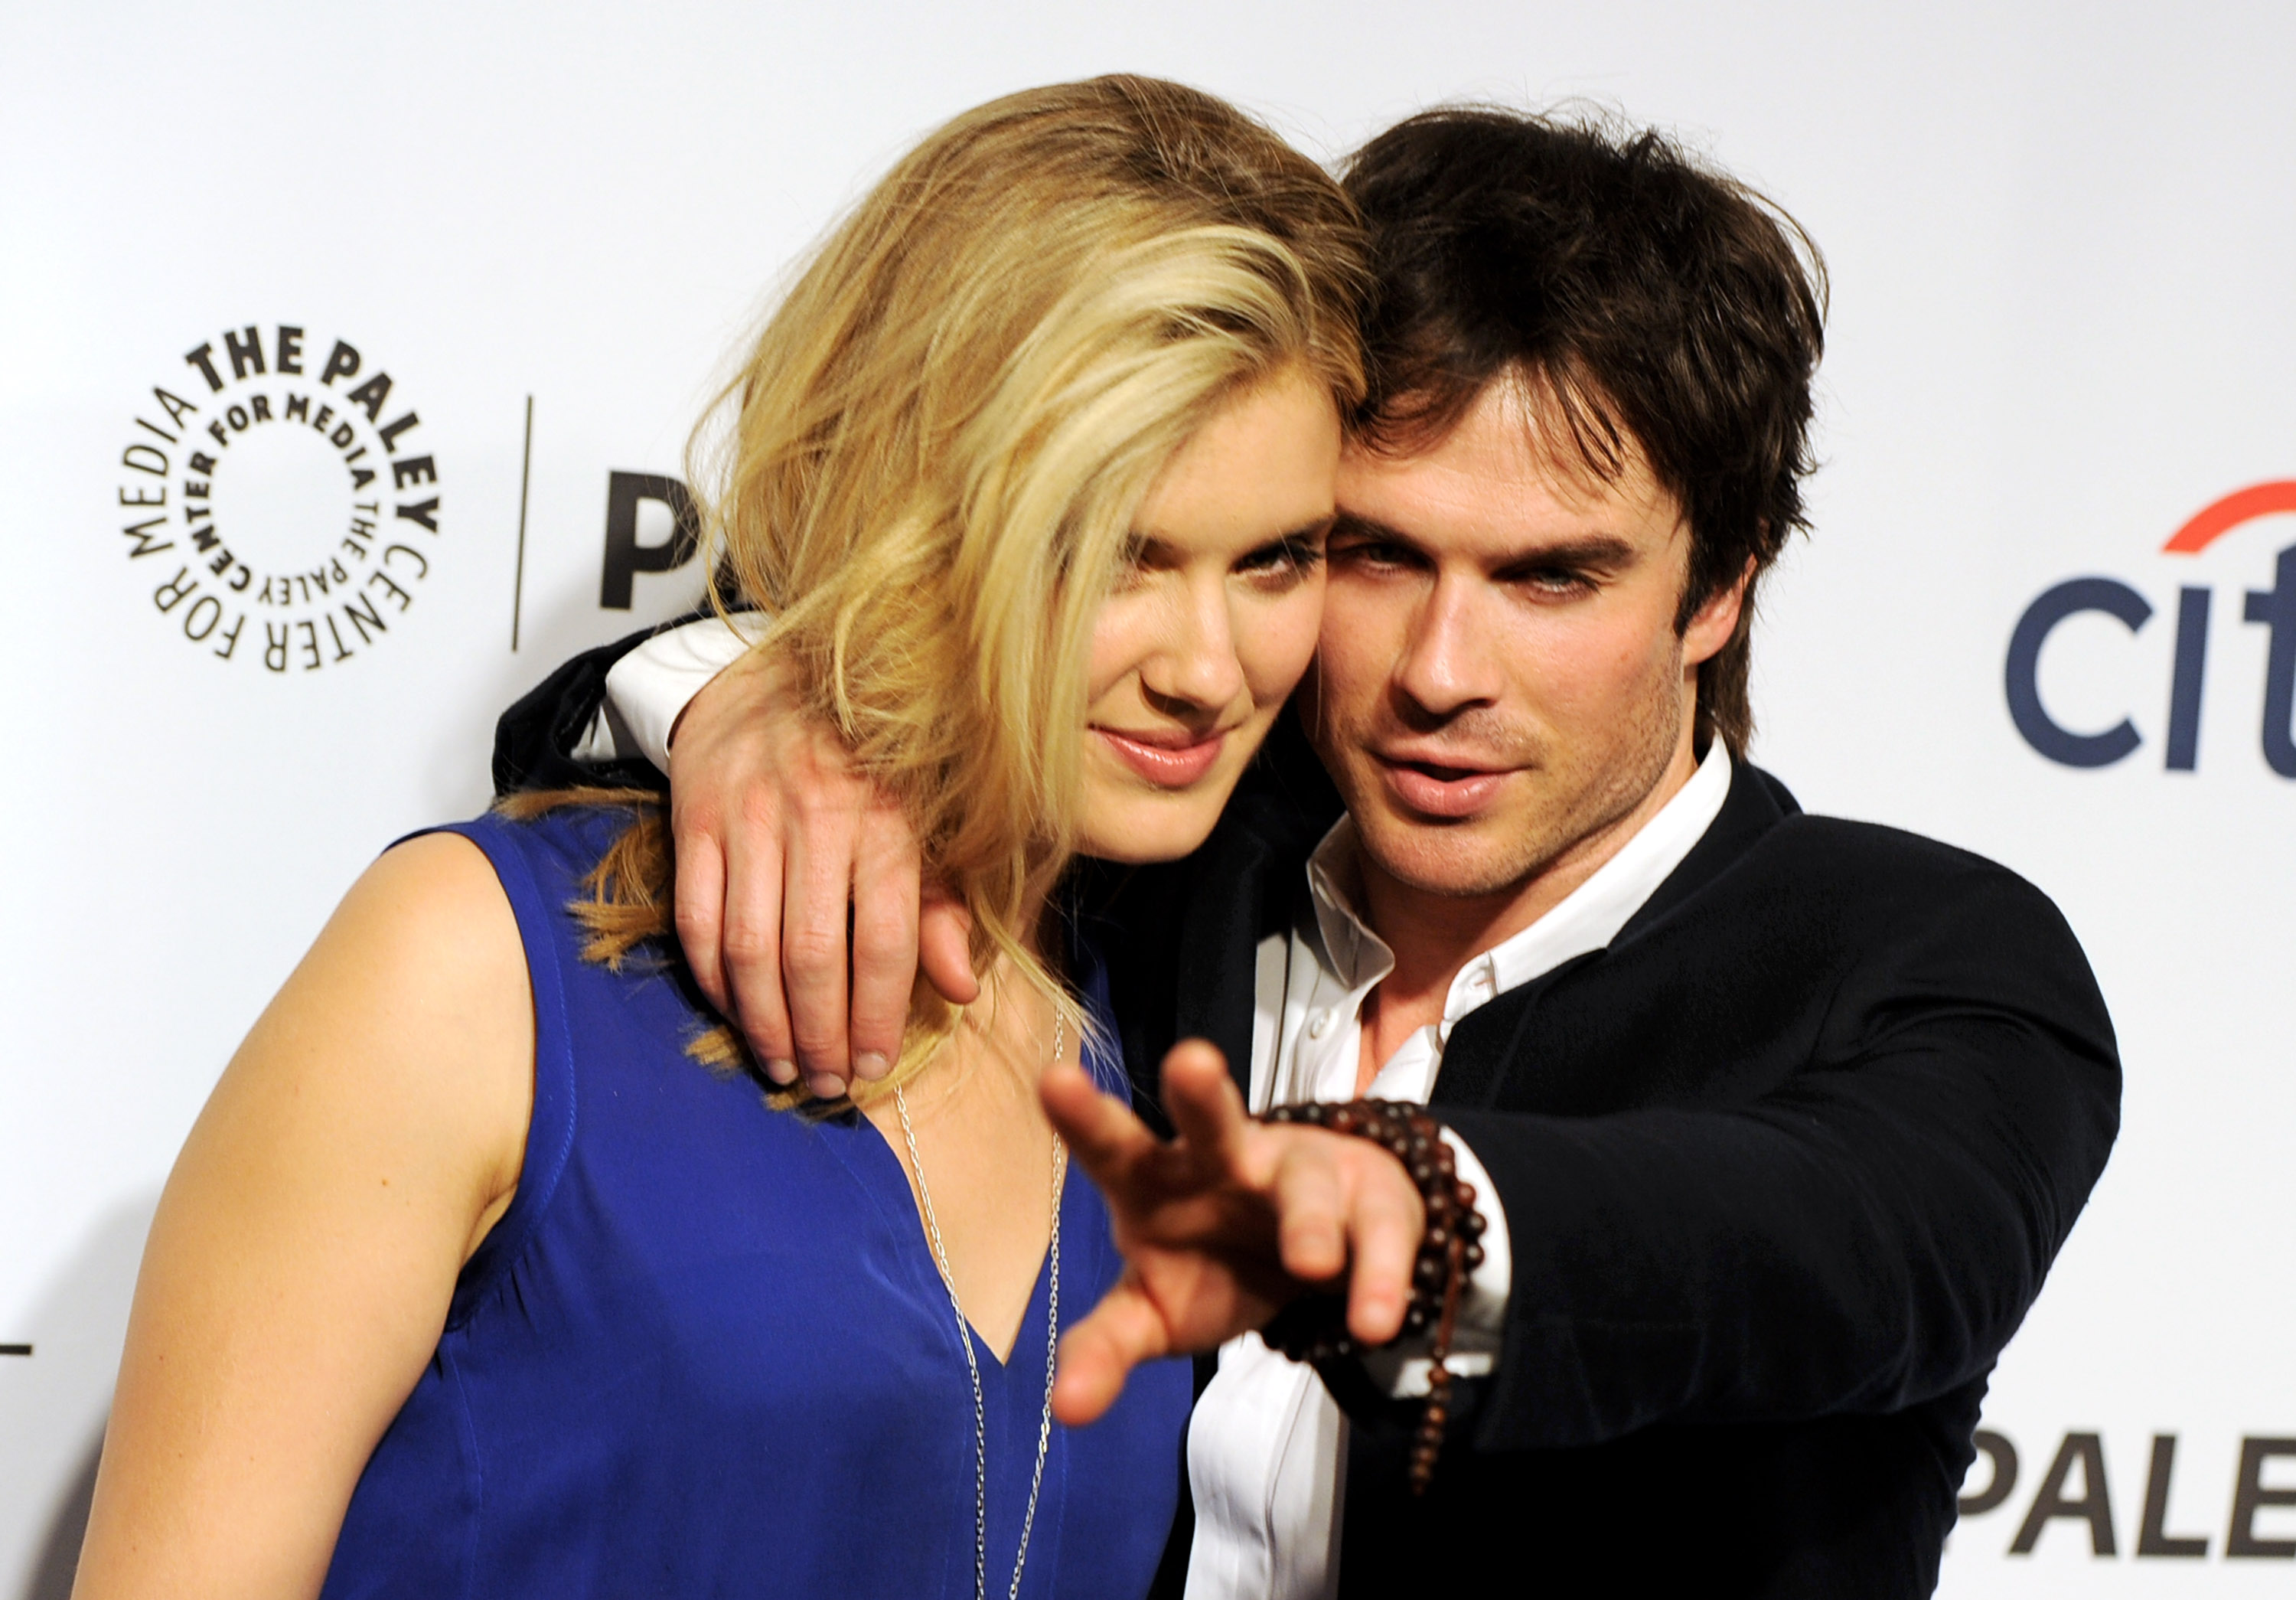 Ian Somerhalder Dating Lost Co Star